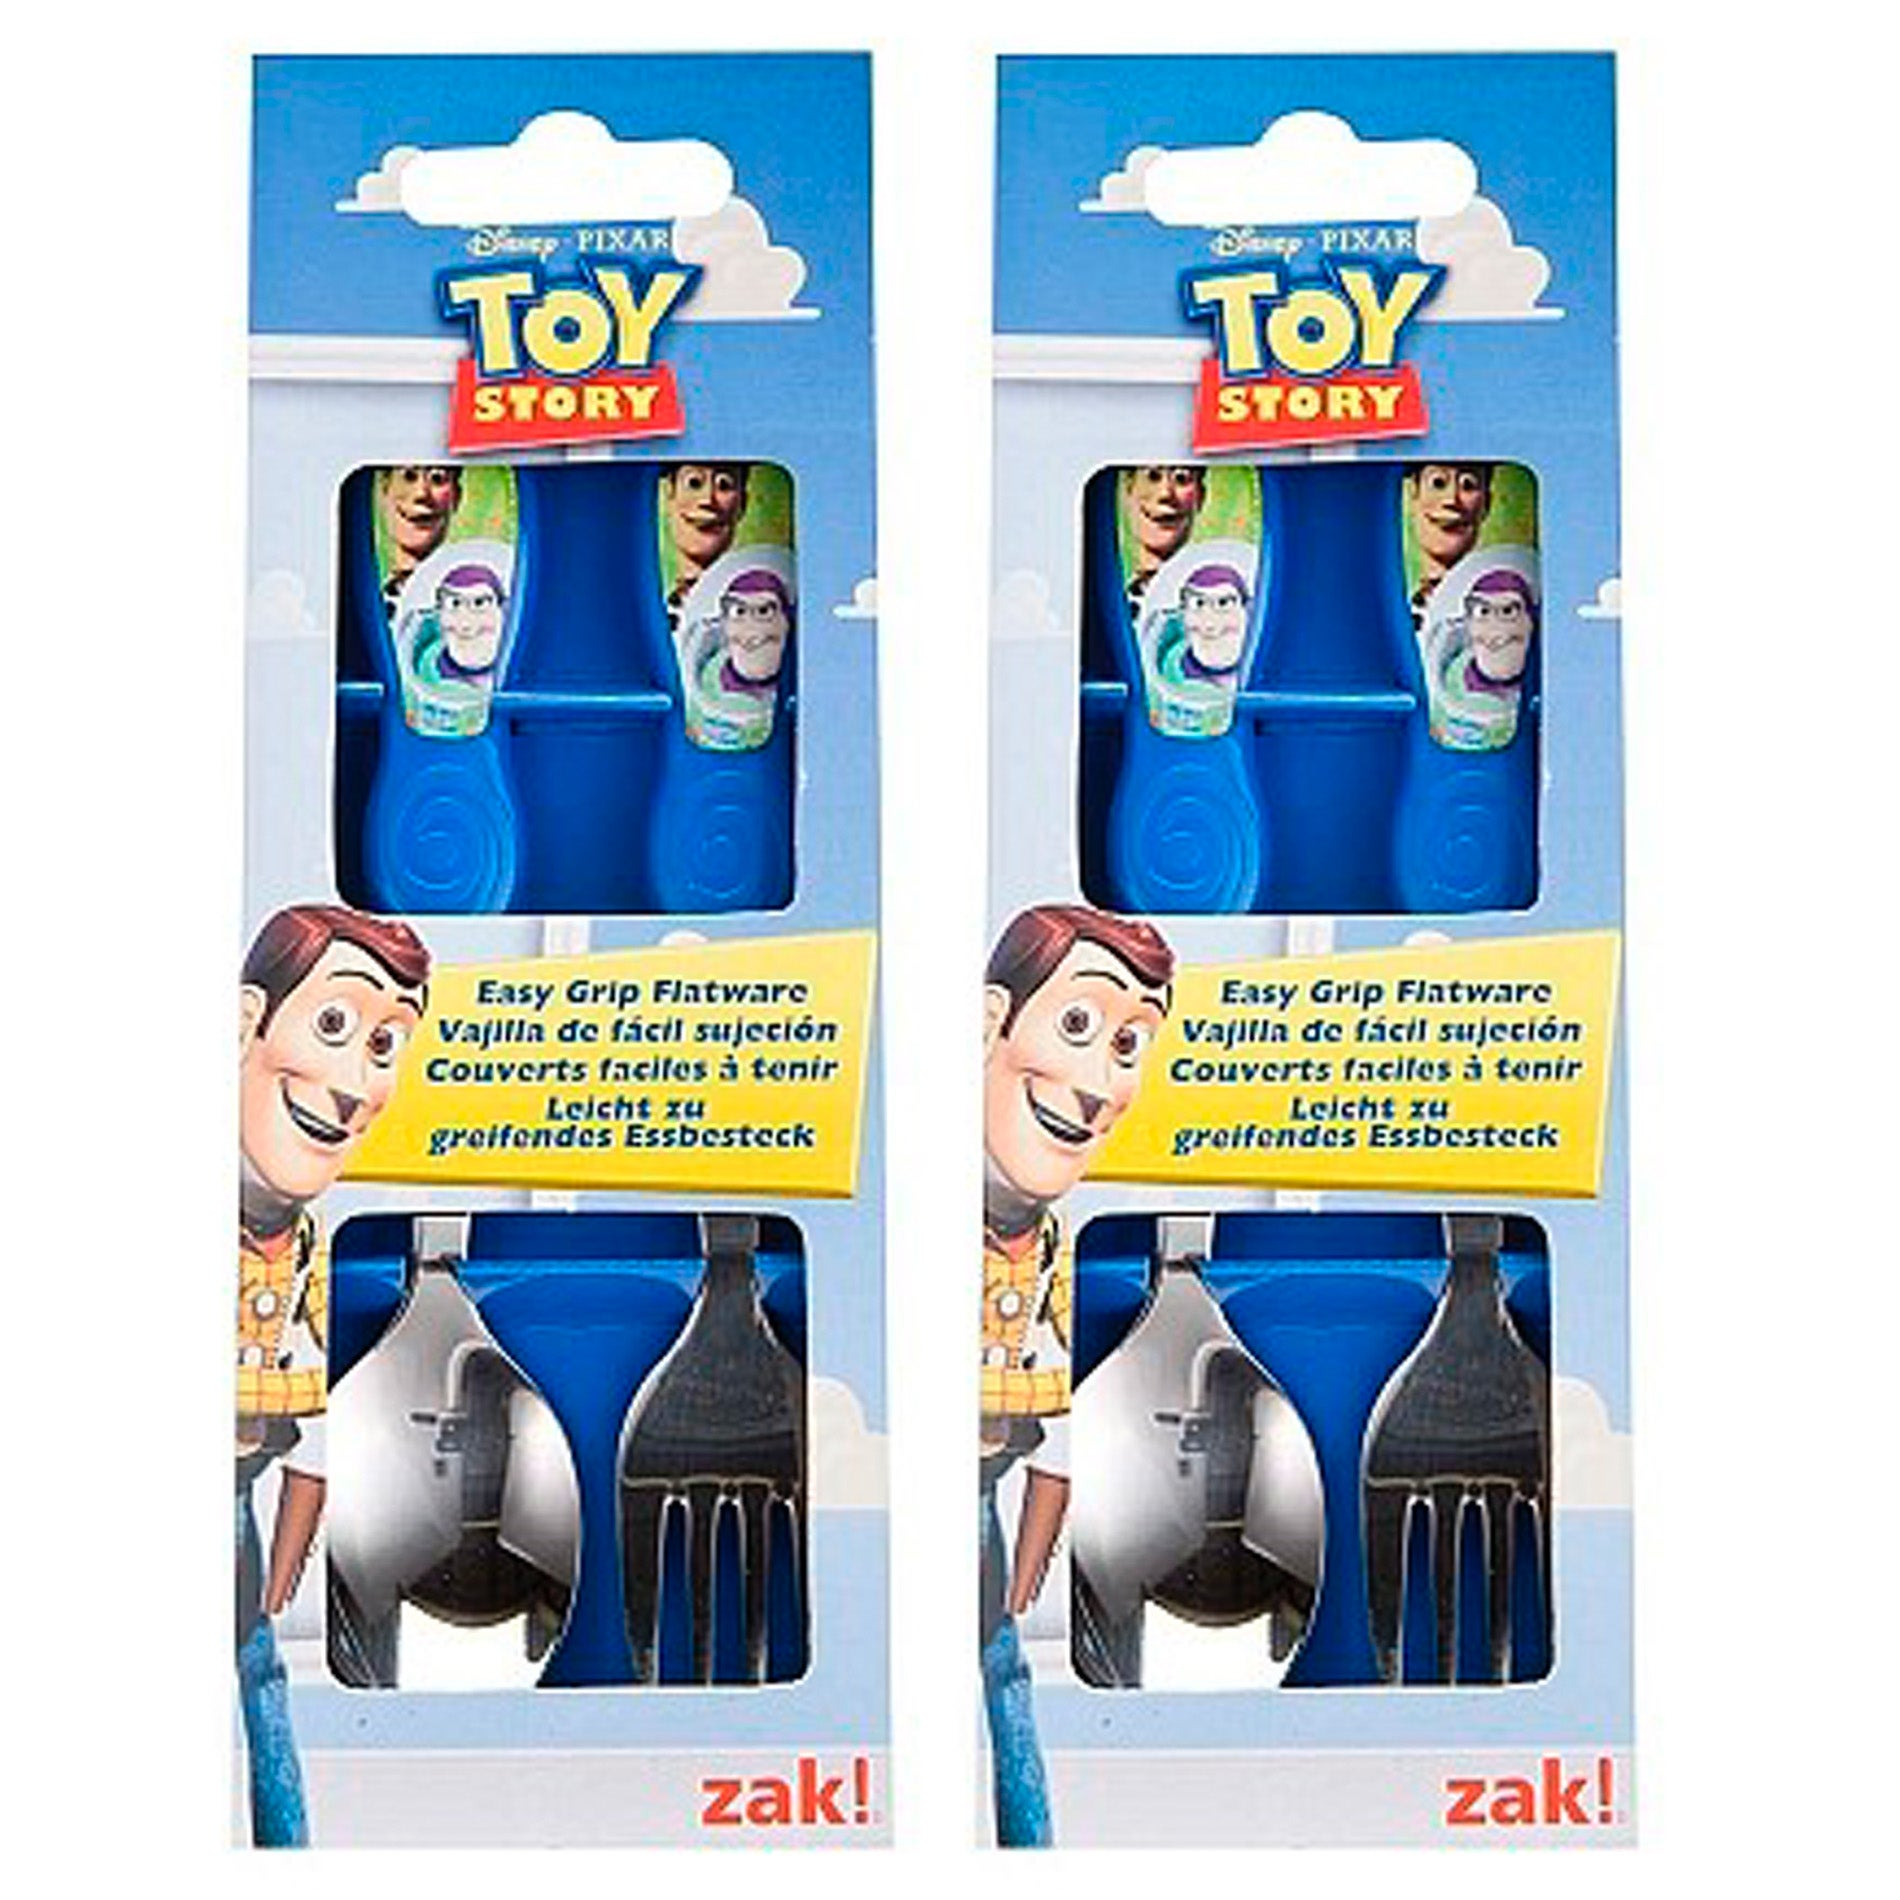 Toy Story Easy-grip 2-piece Flatware (Set of 2)